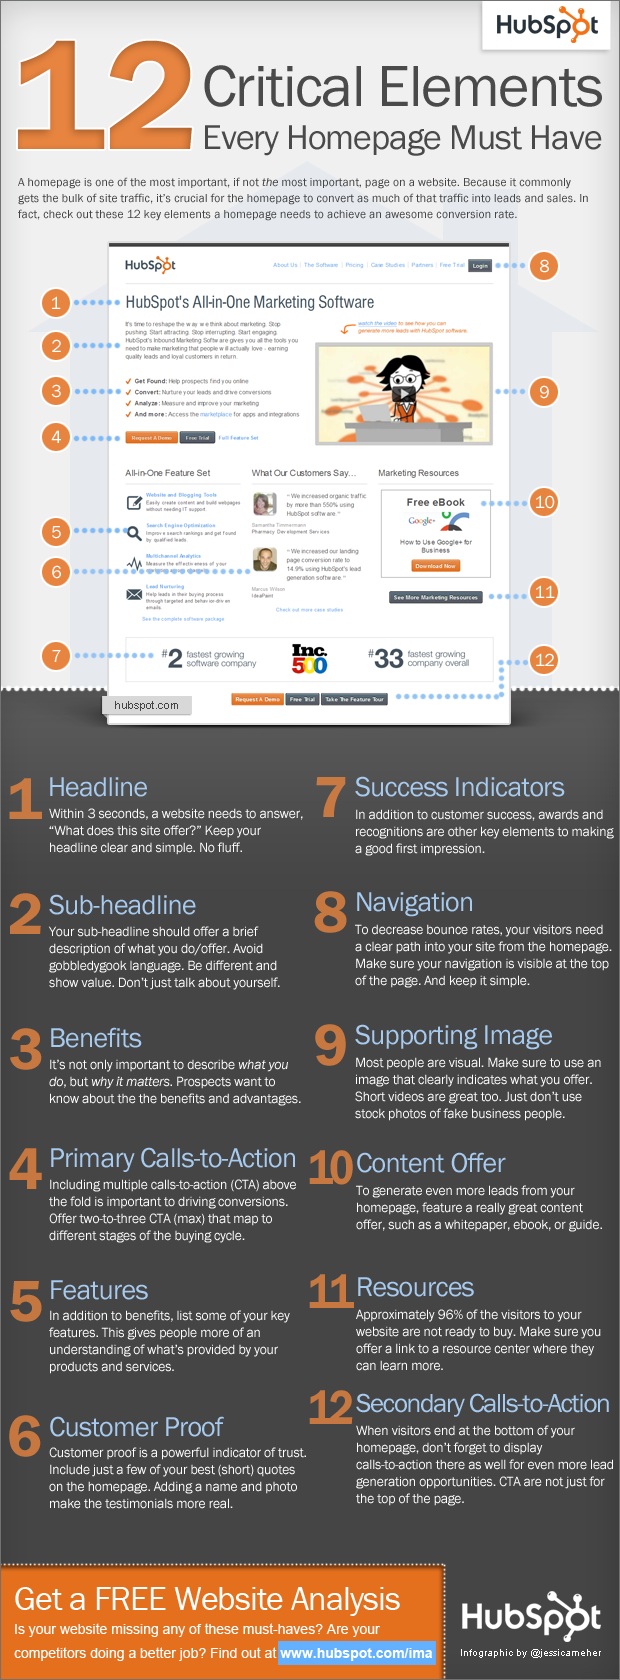 12-Homepage-Elements-HubSpot-Infographic1